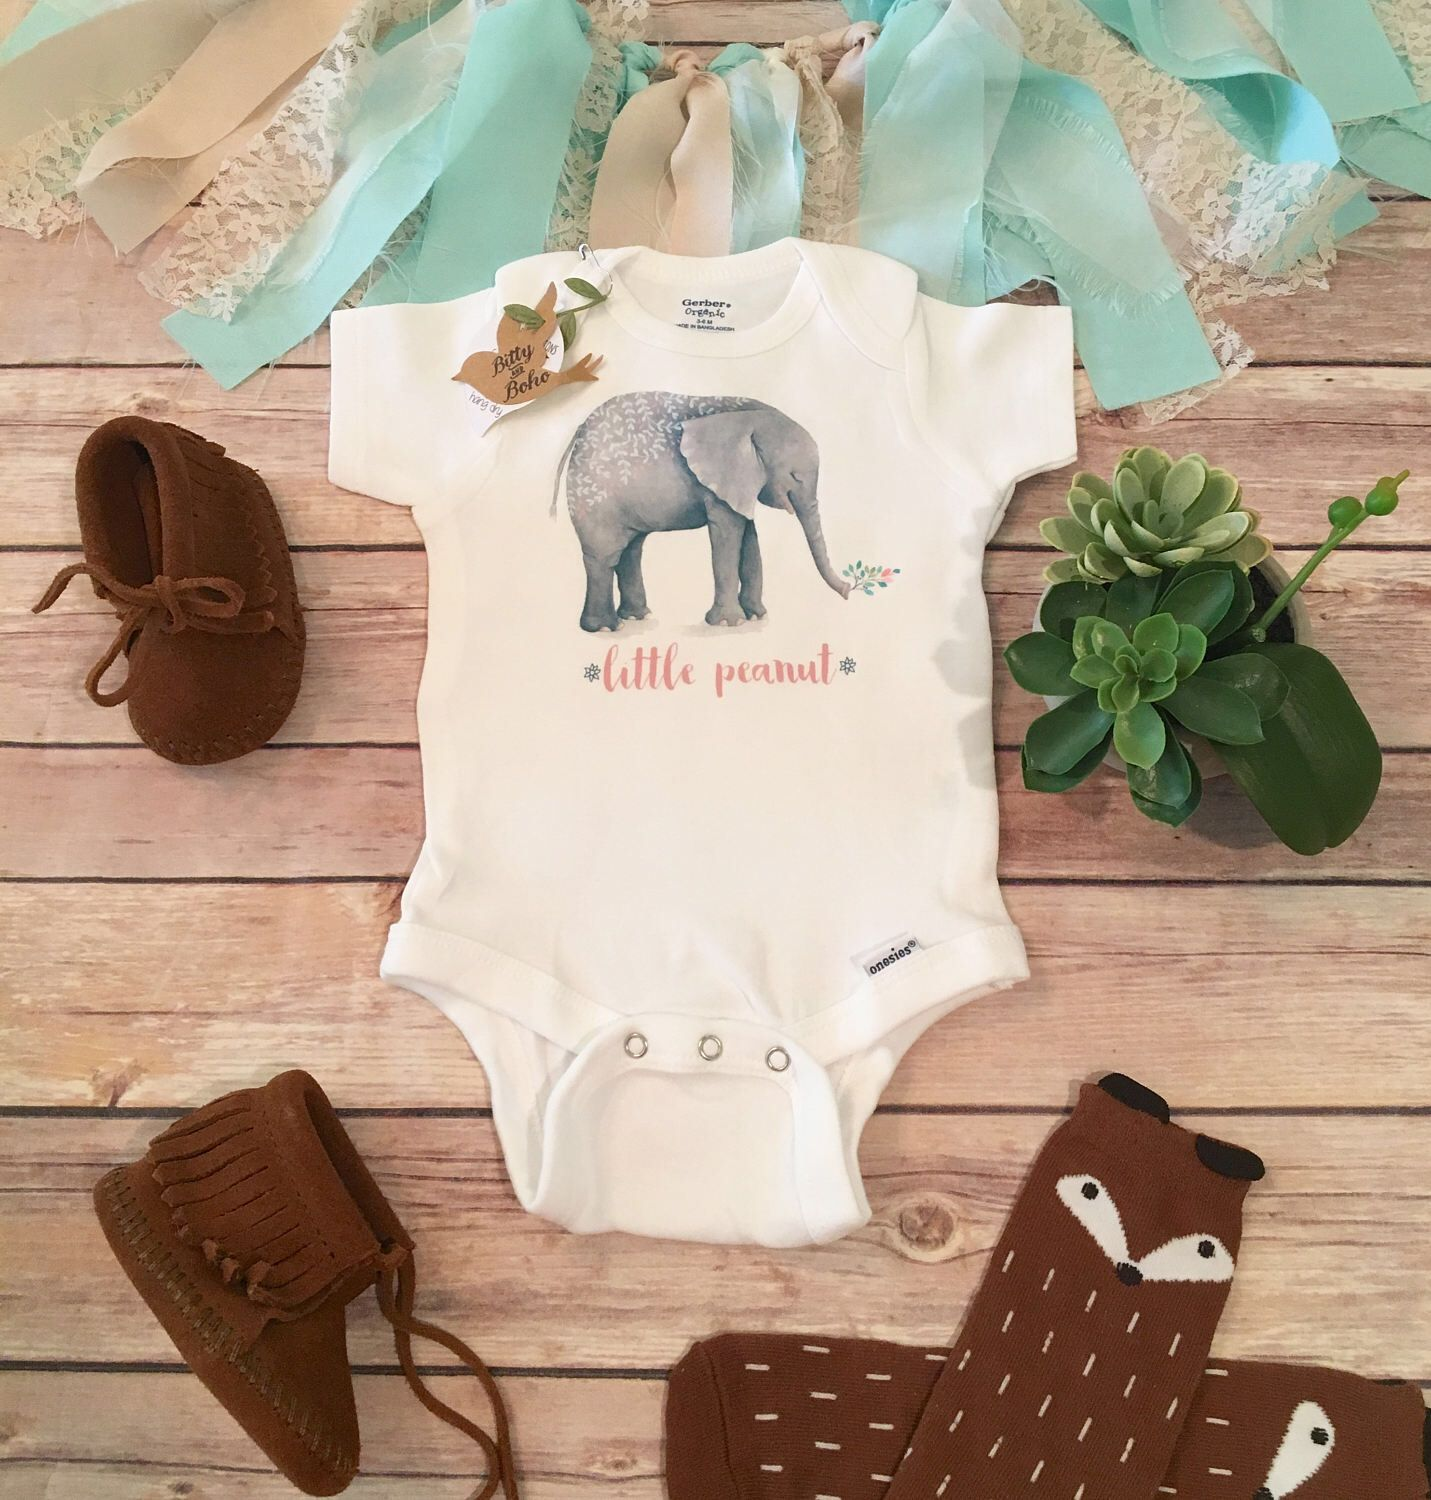 Little Peanut esie Baby Shower Gift Boho Baby Clothes Baby